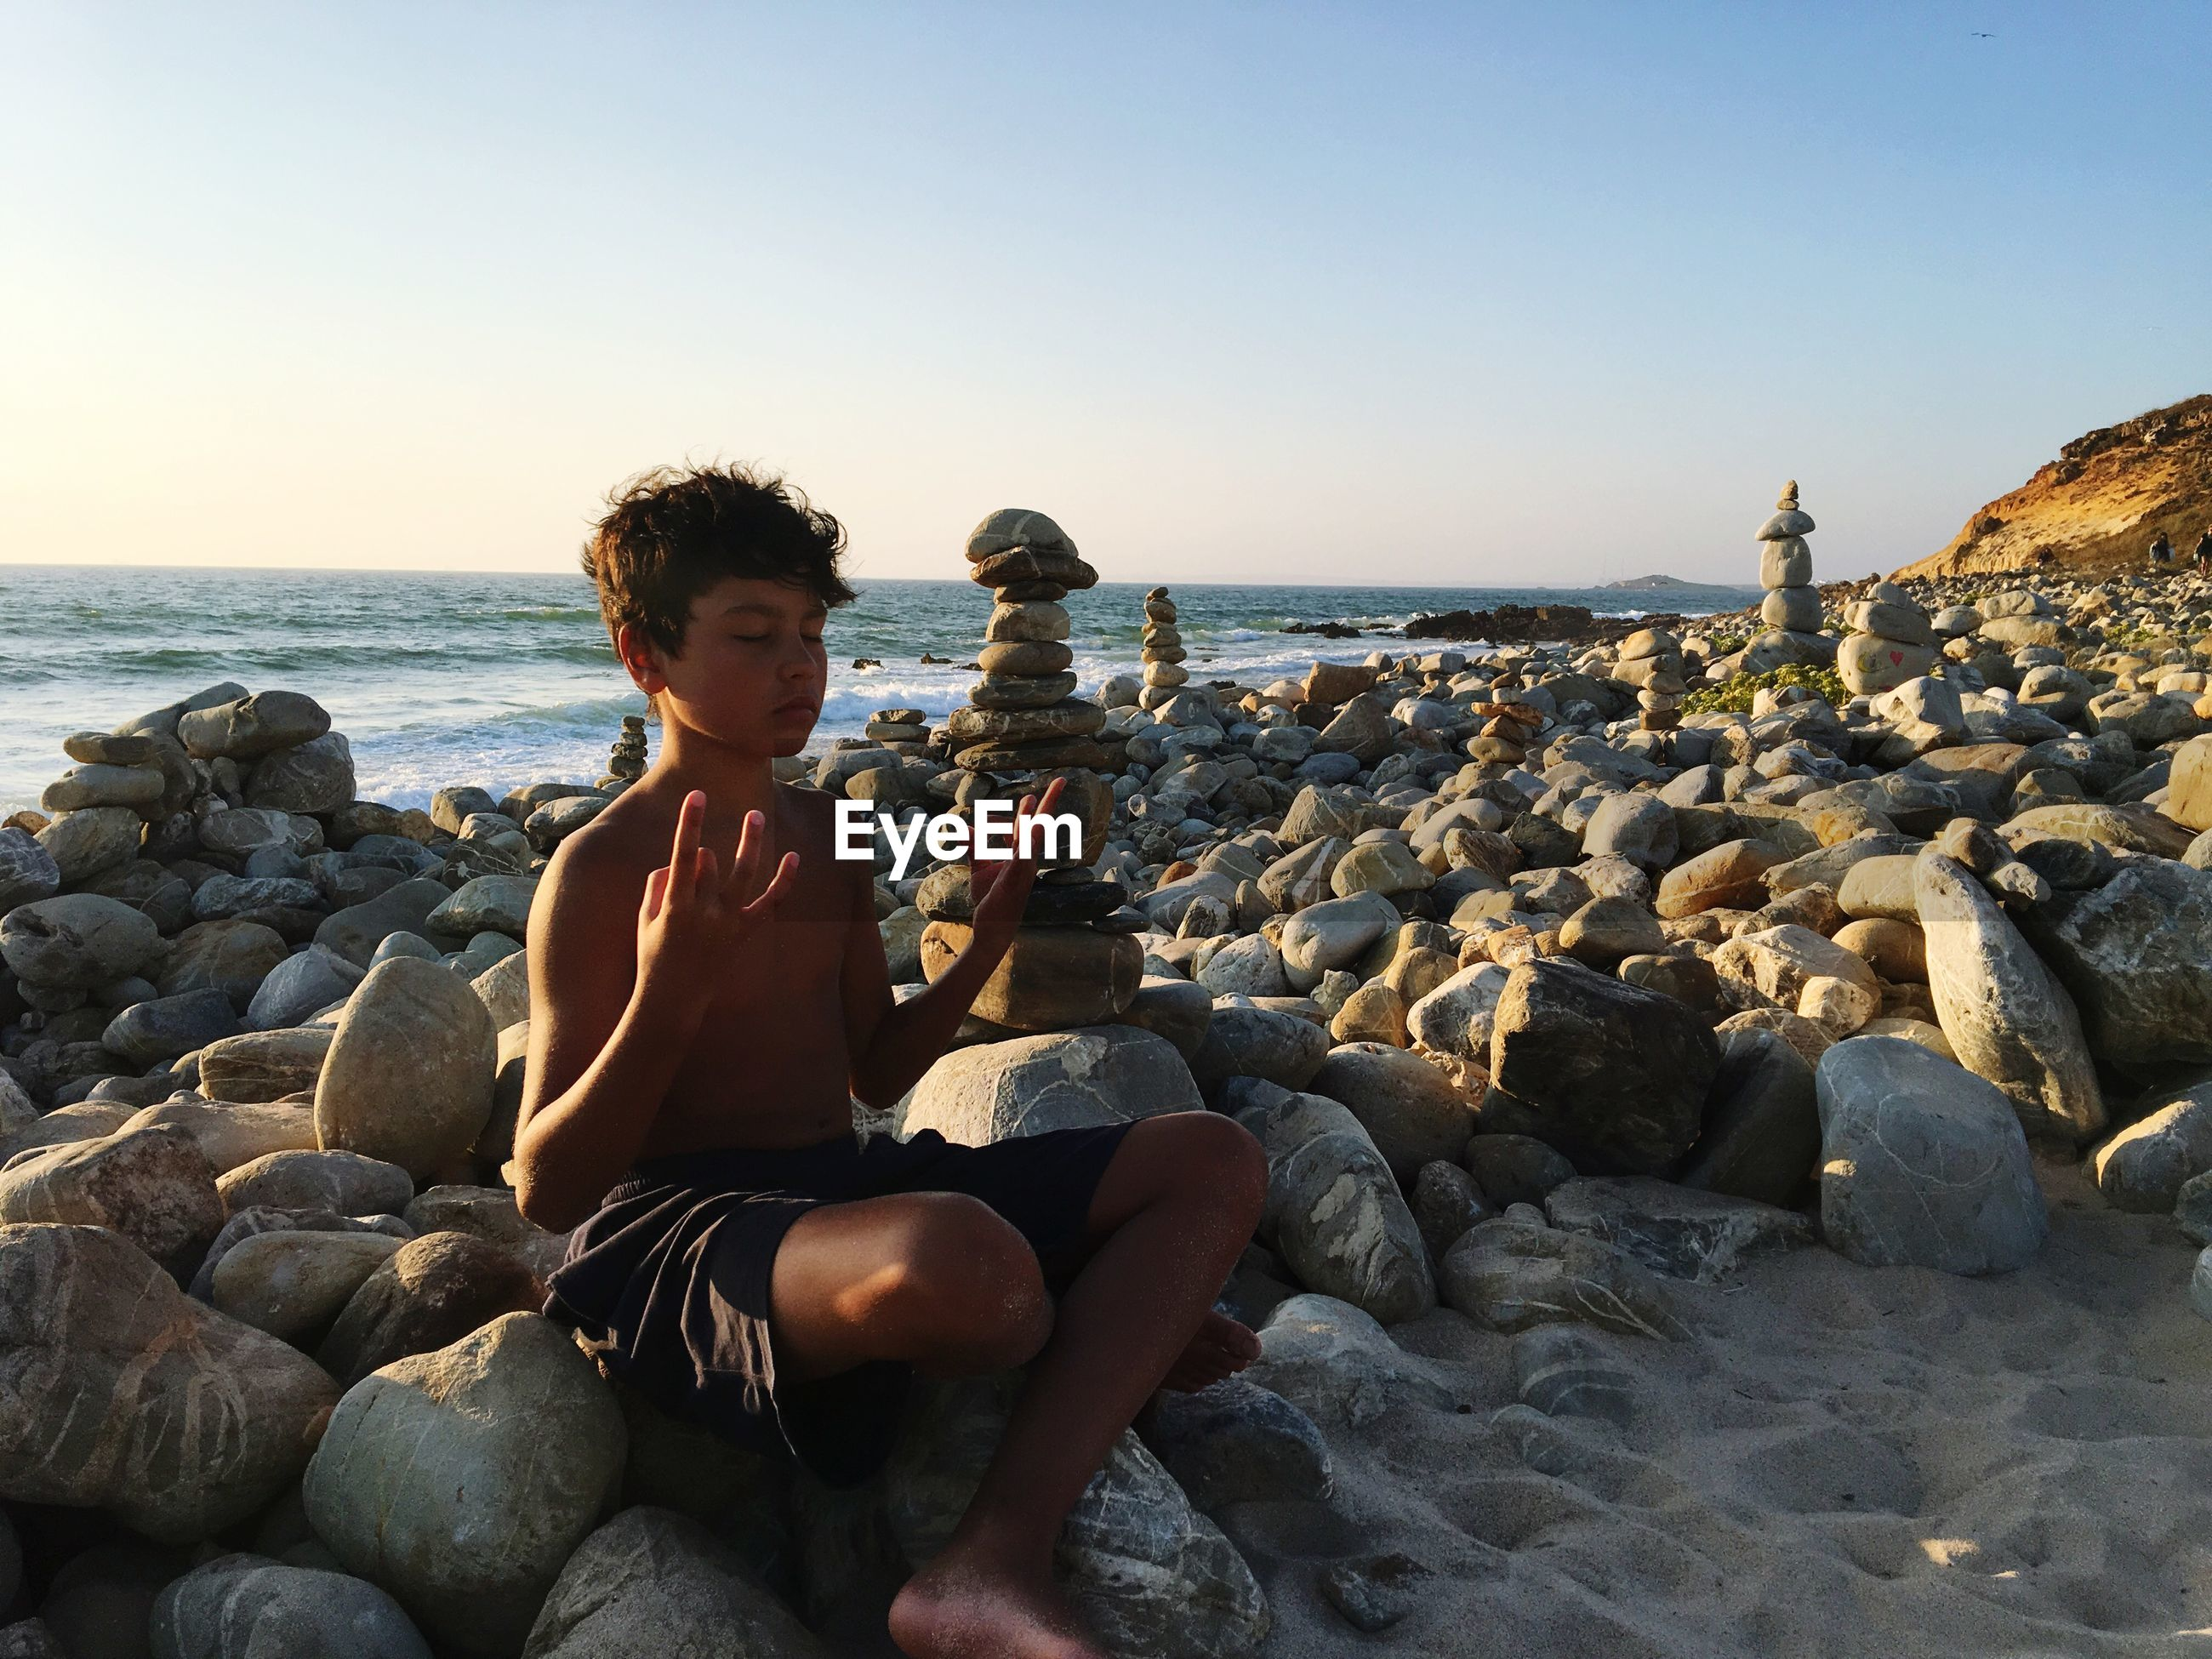 Shirtless boy with eyes closed meditating while sitting on rocks at beach against clear sky during sunset